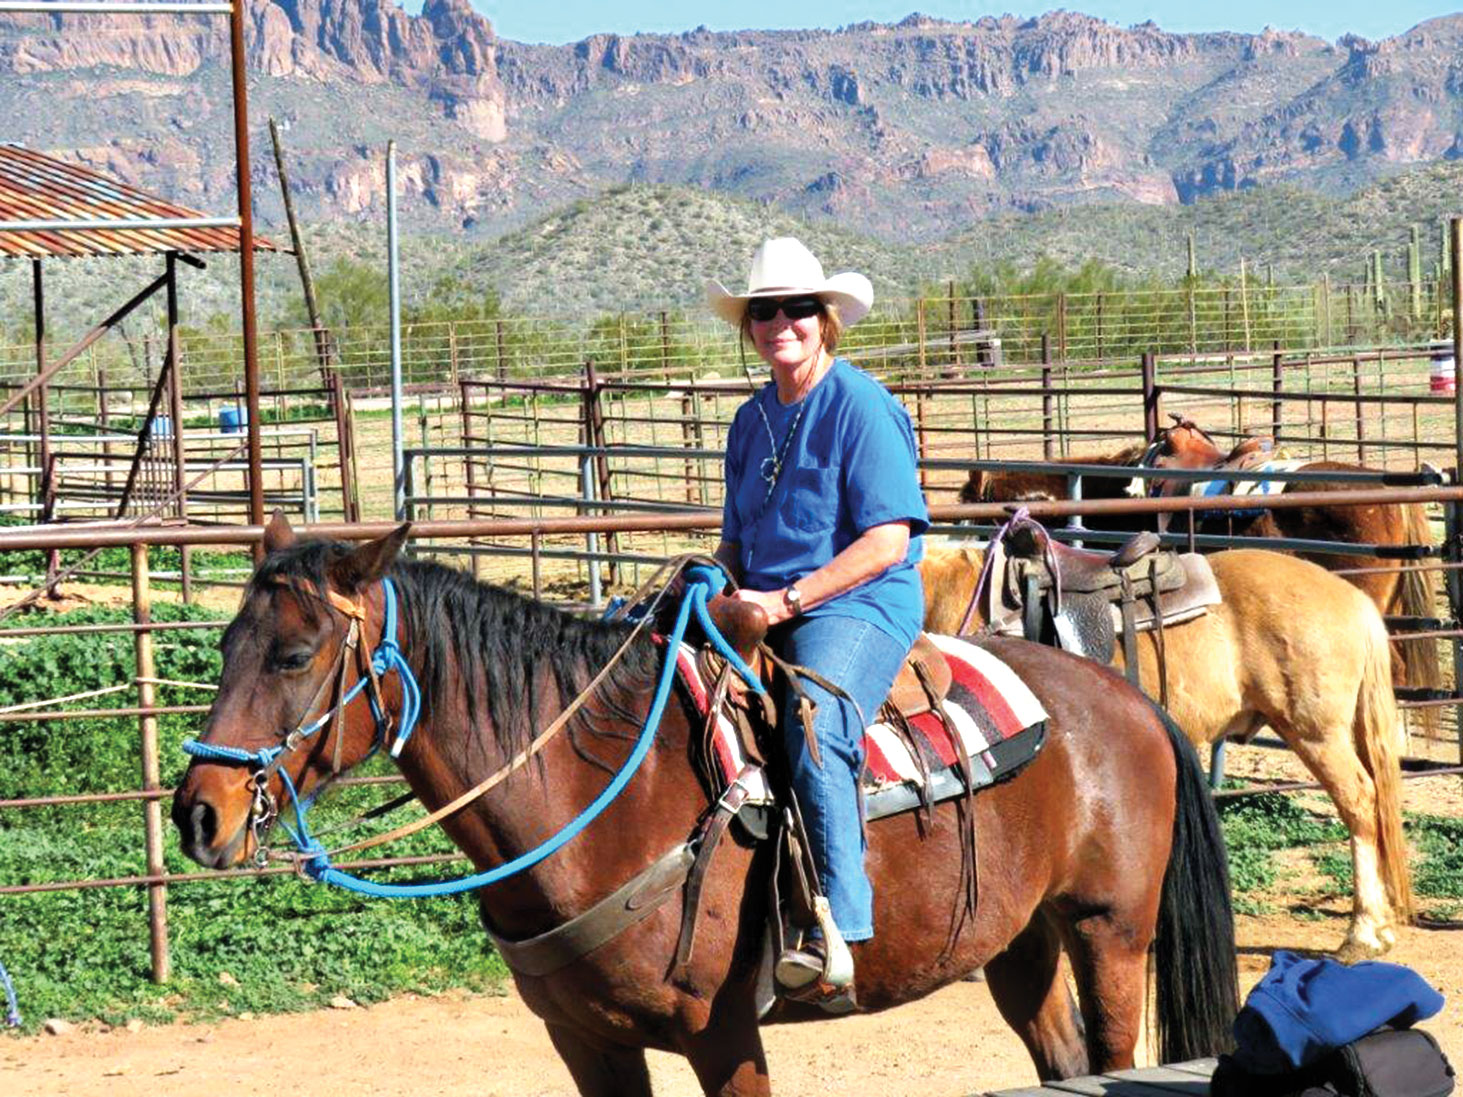 New resident Jennifer Betts got back on a horse after 47 years and loved the ride.